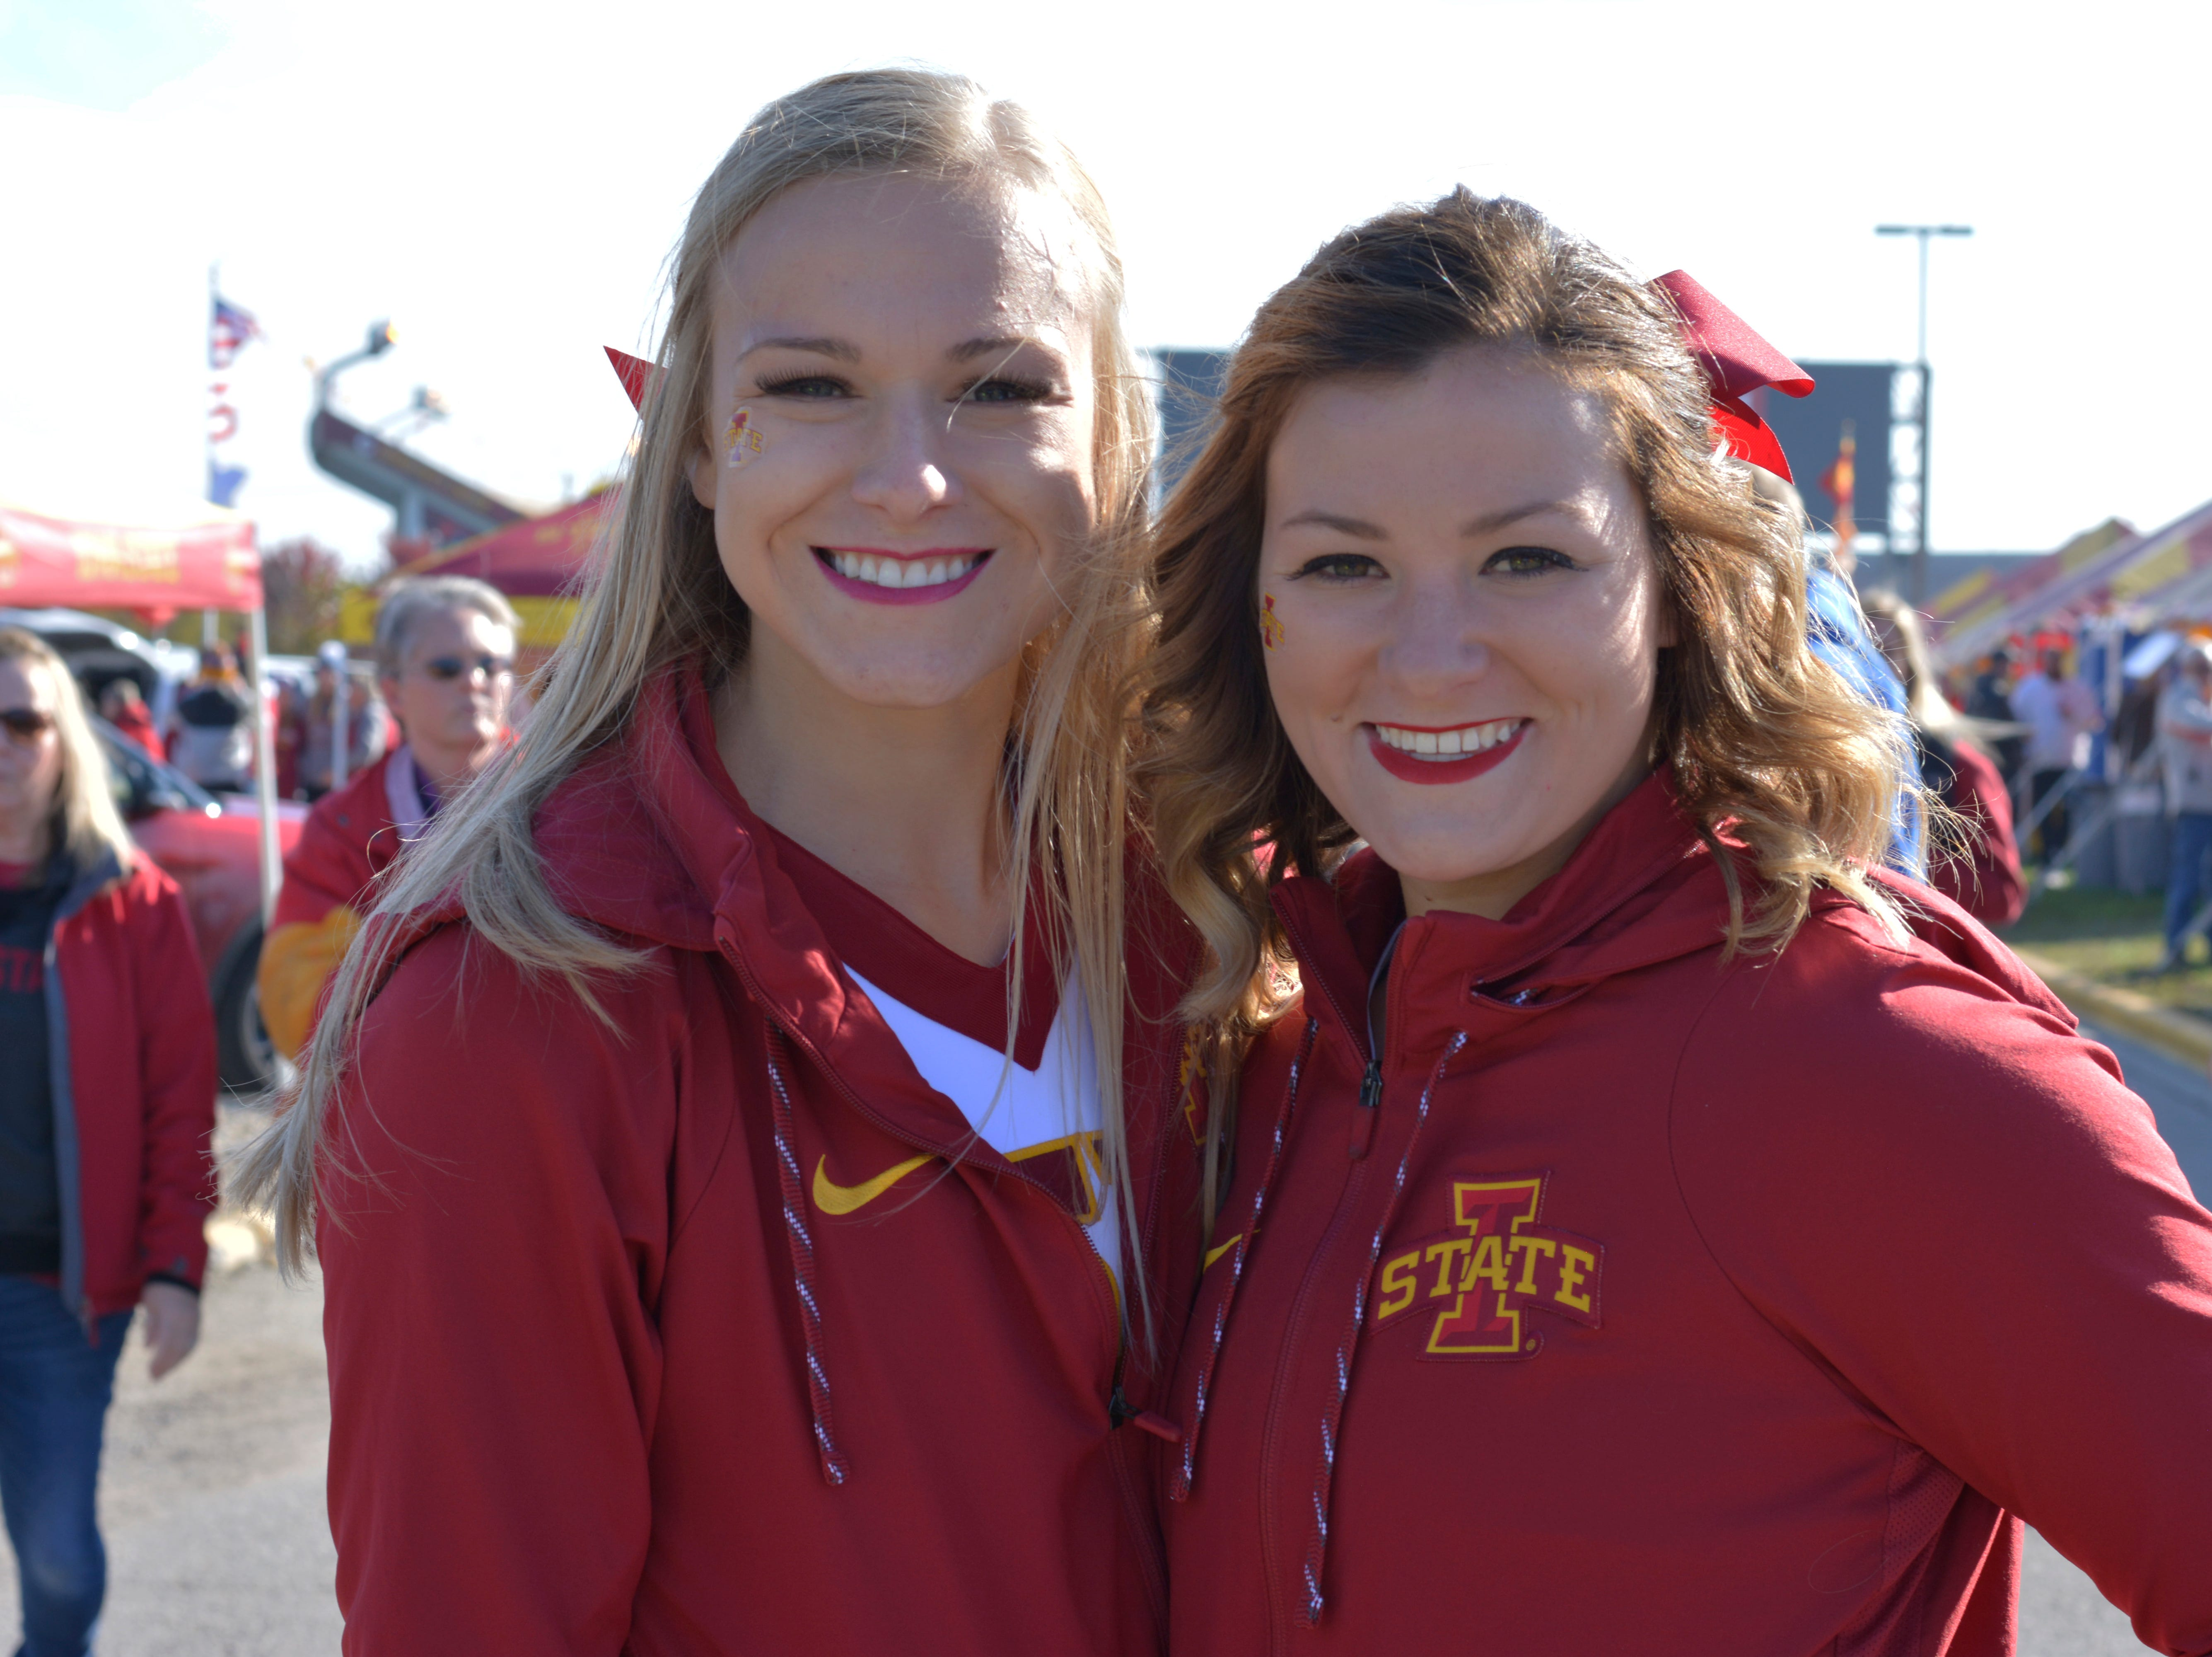 Lauren Kinney (left) and Molly Sweeden (right) before the Iowa State University football game against West Virginia in Ames on Oct. 13.